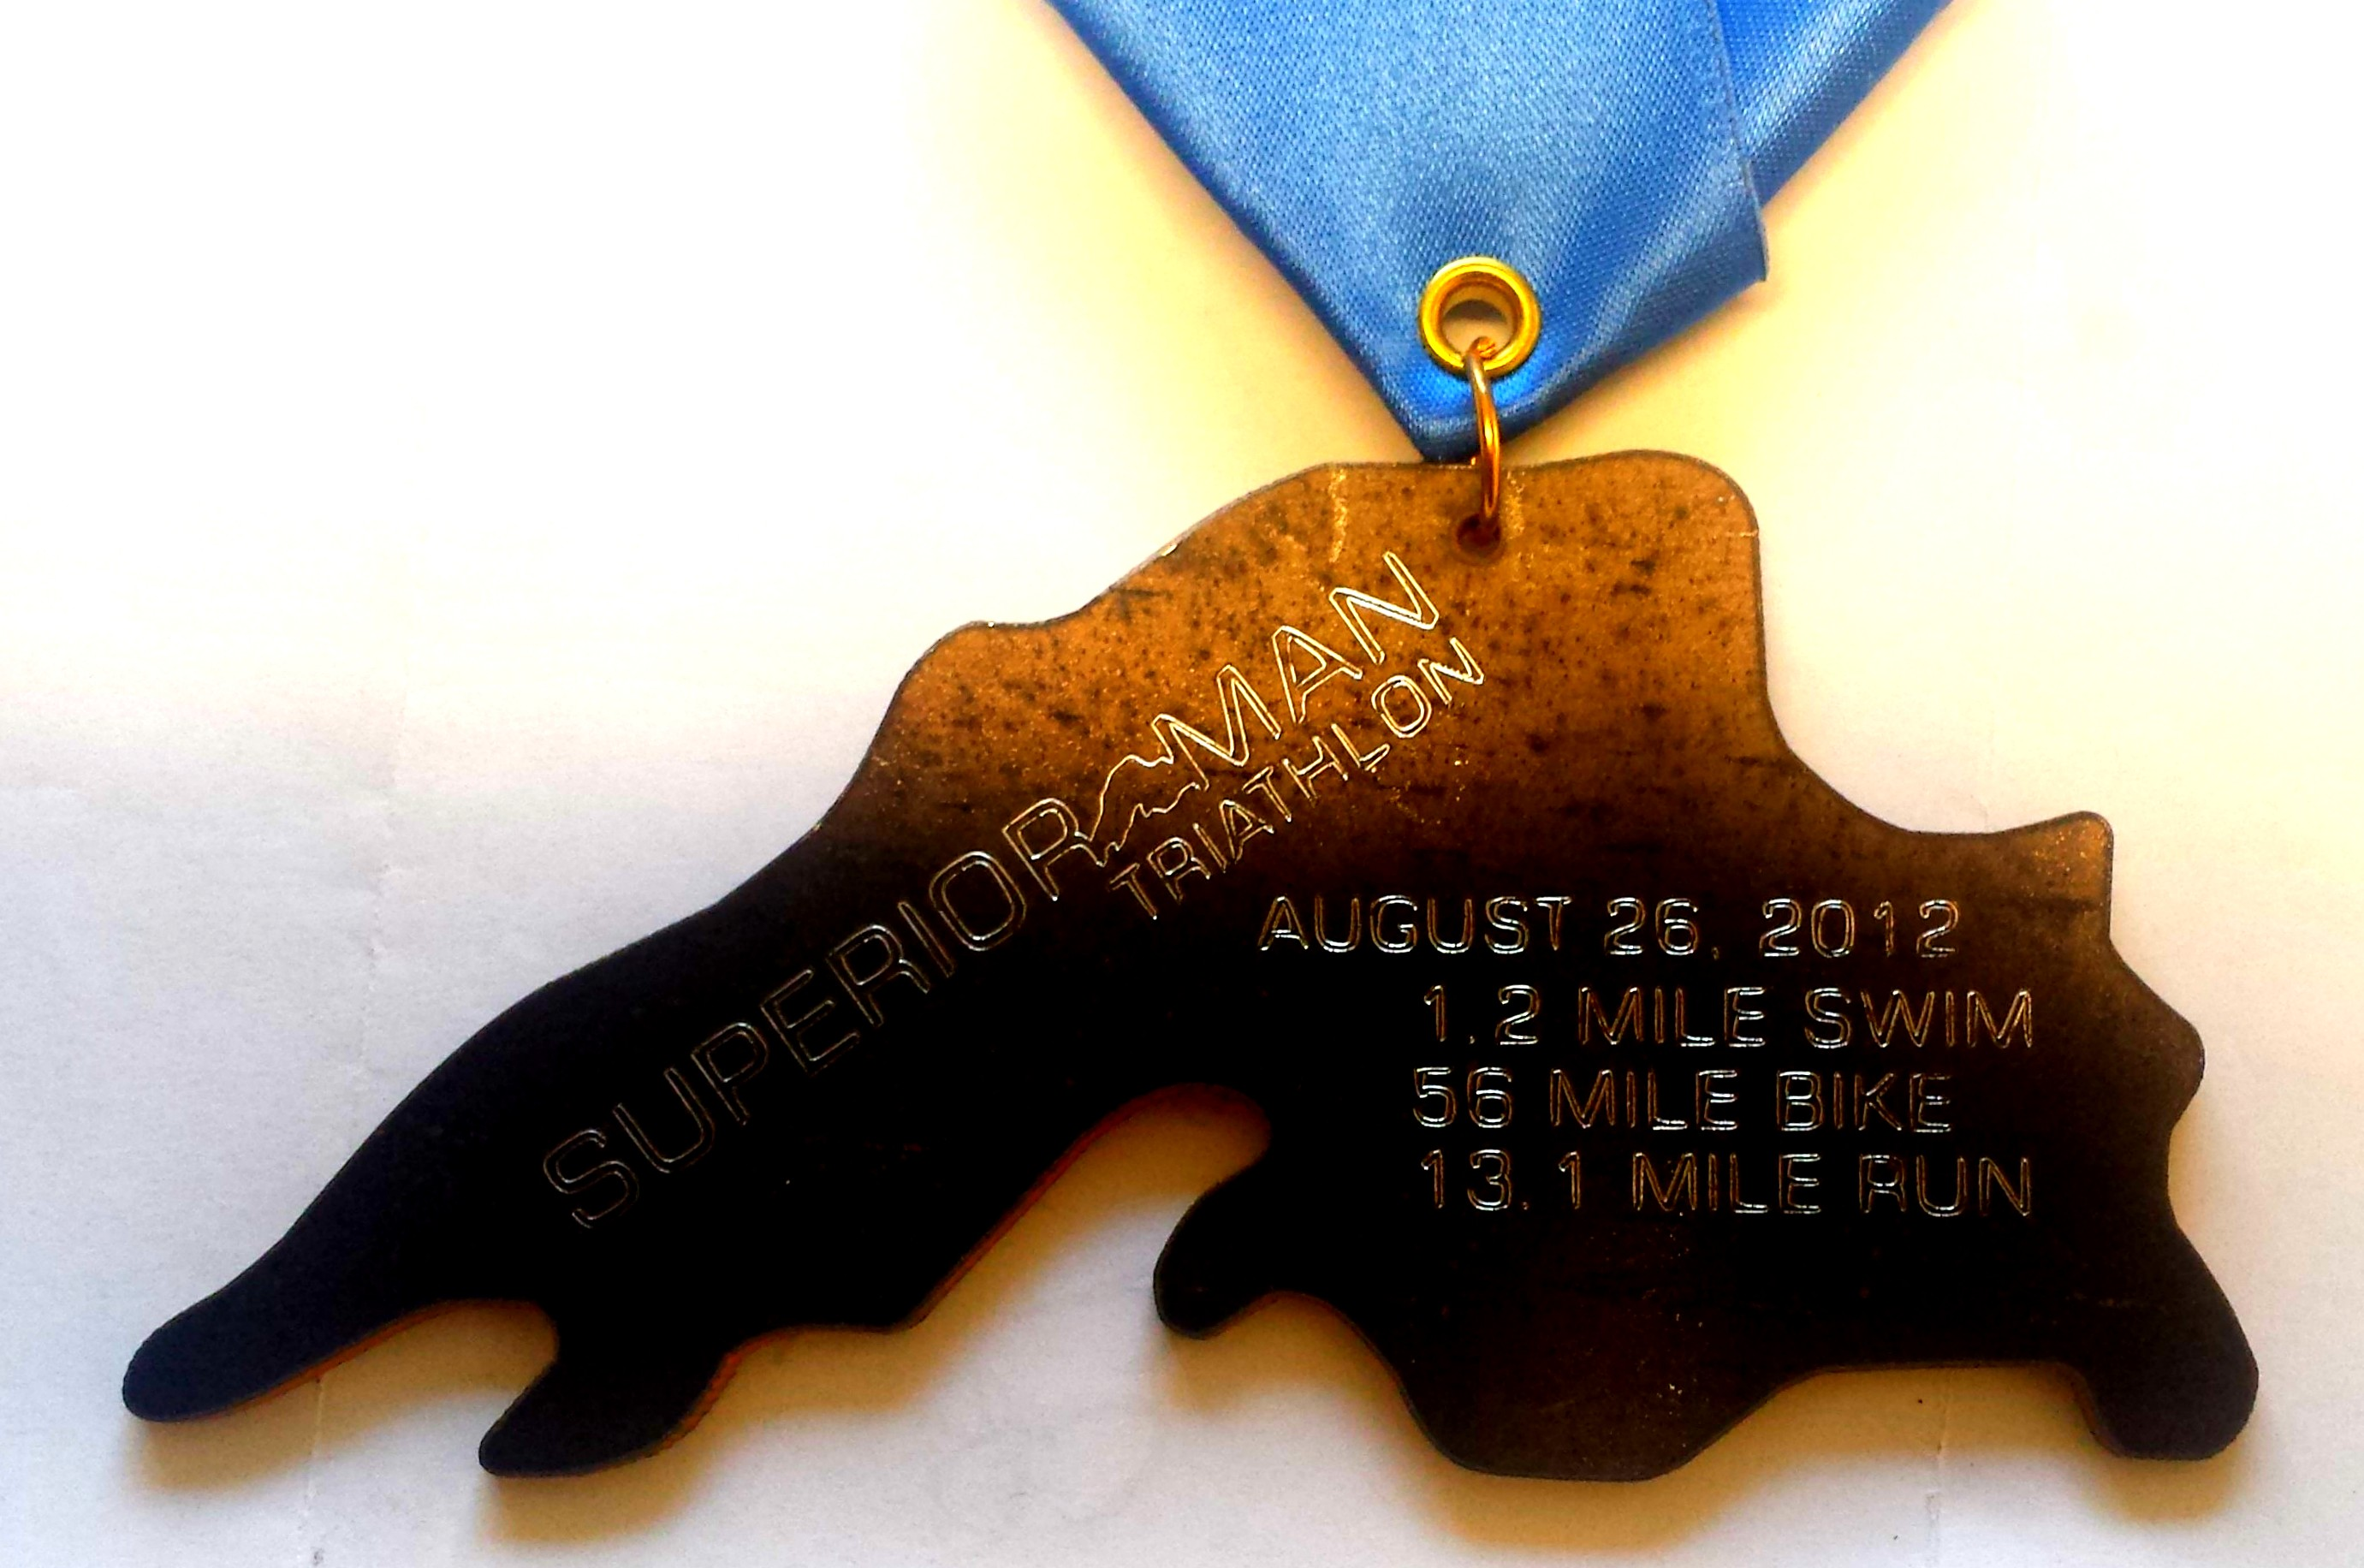 superior-man-medal-1.jpg